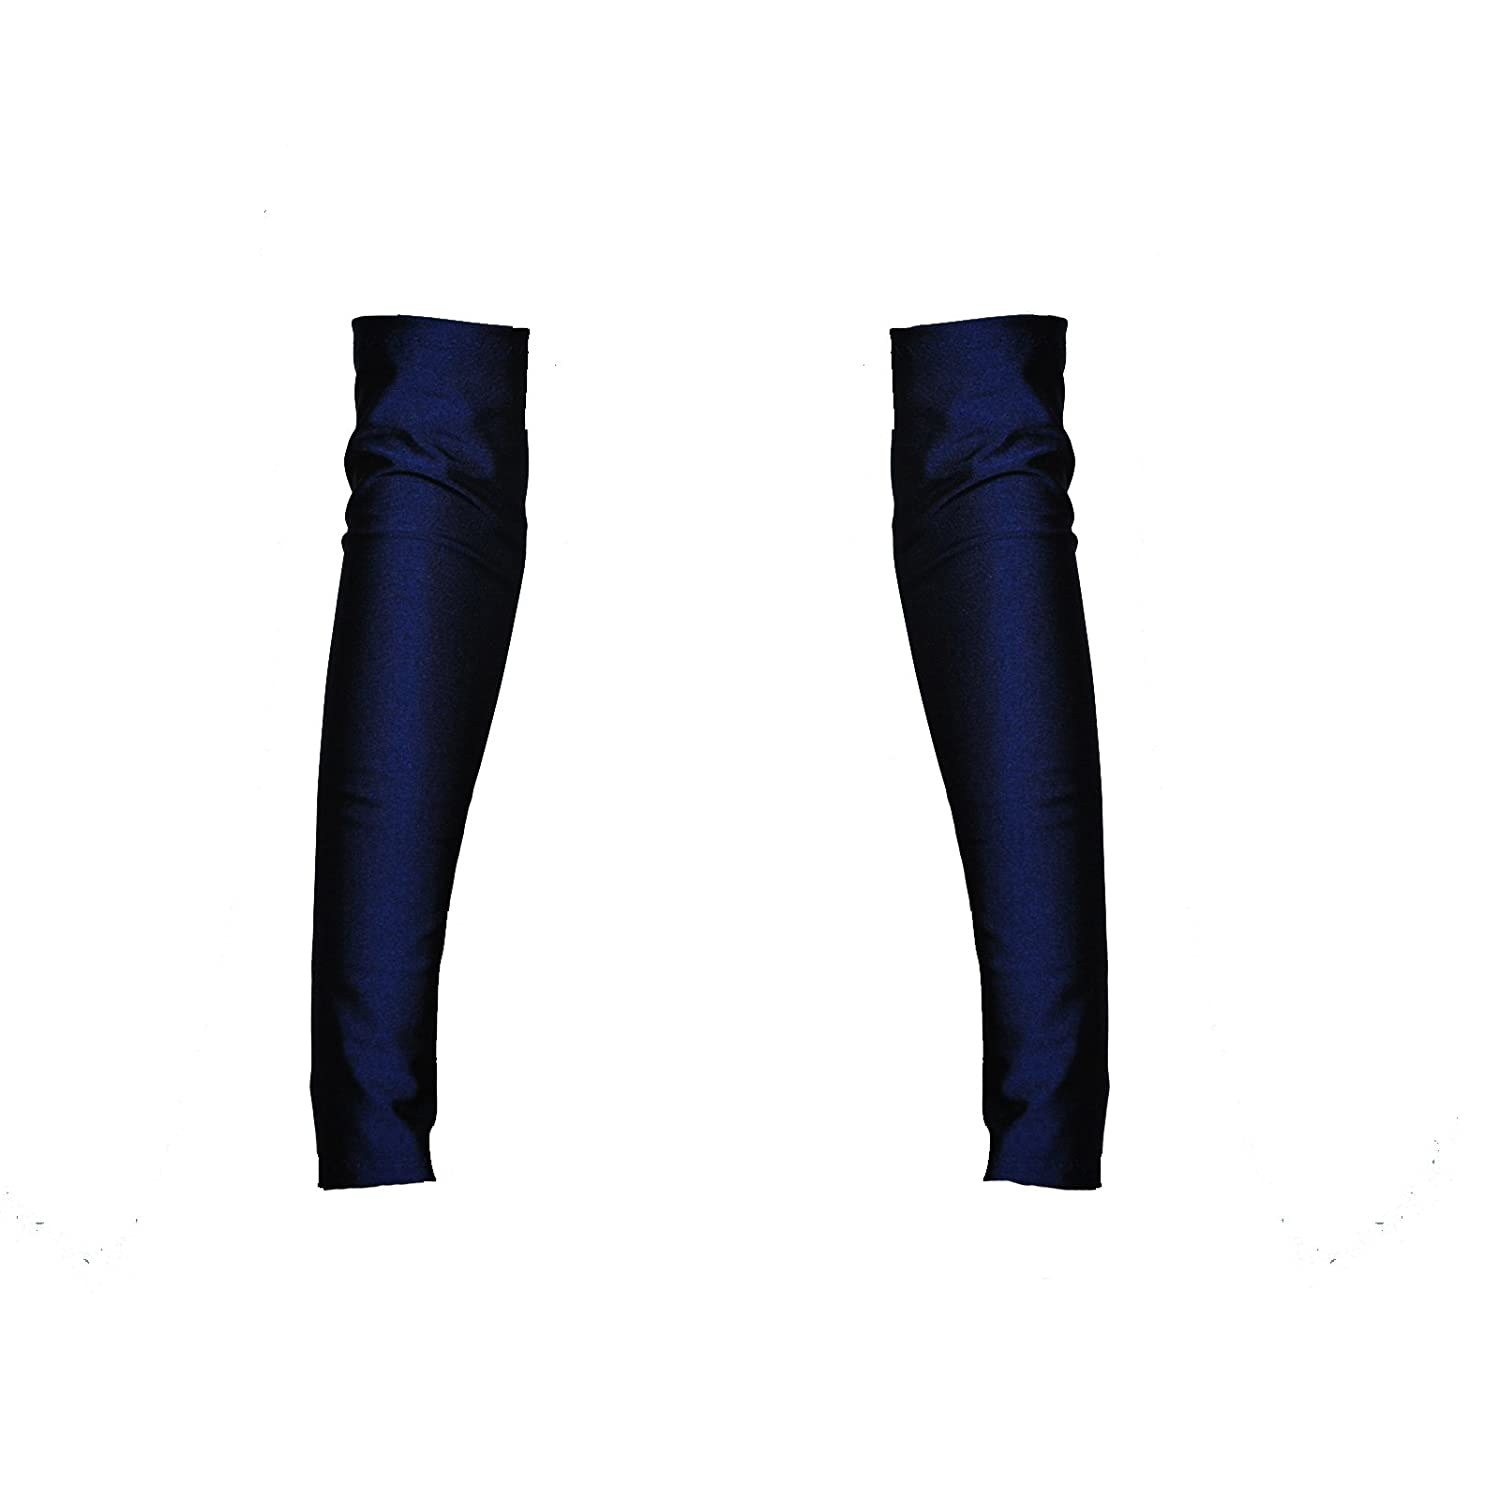 G45 - A Pair of Navy Fantasystore Brand Lycra Arm Warmers Gauntlets